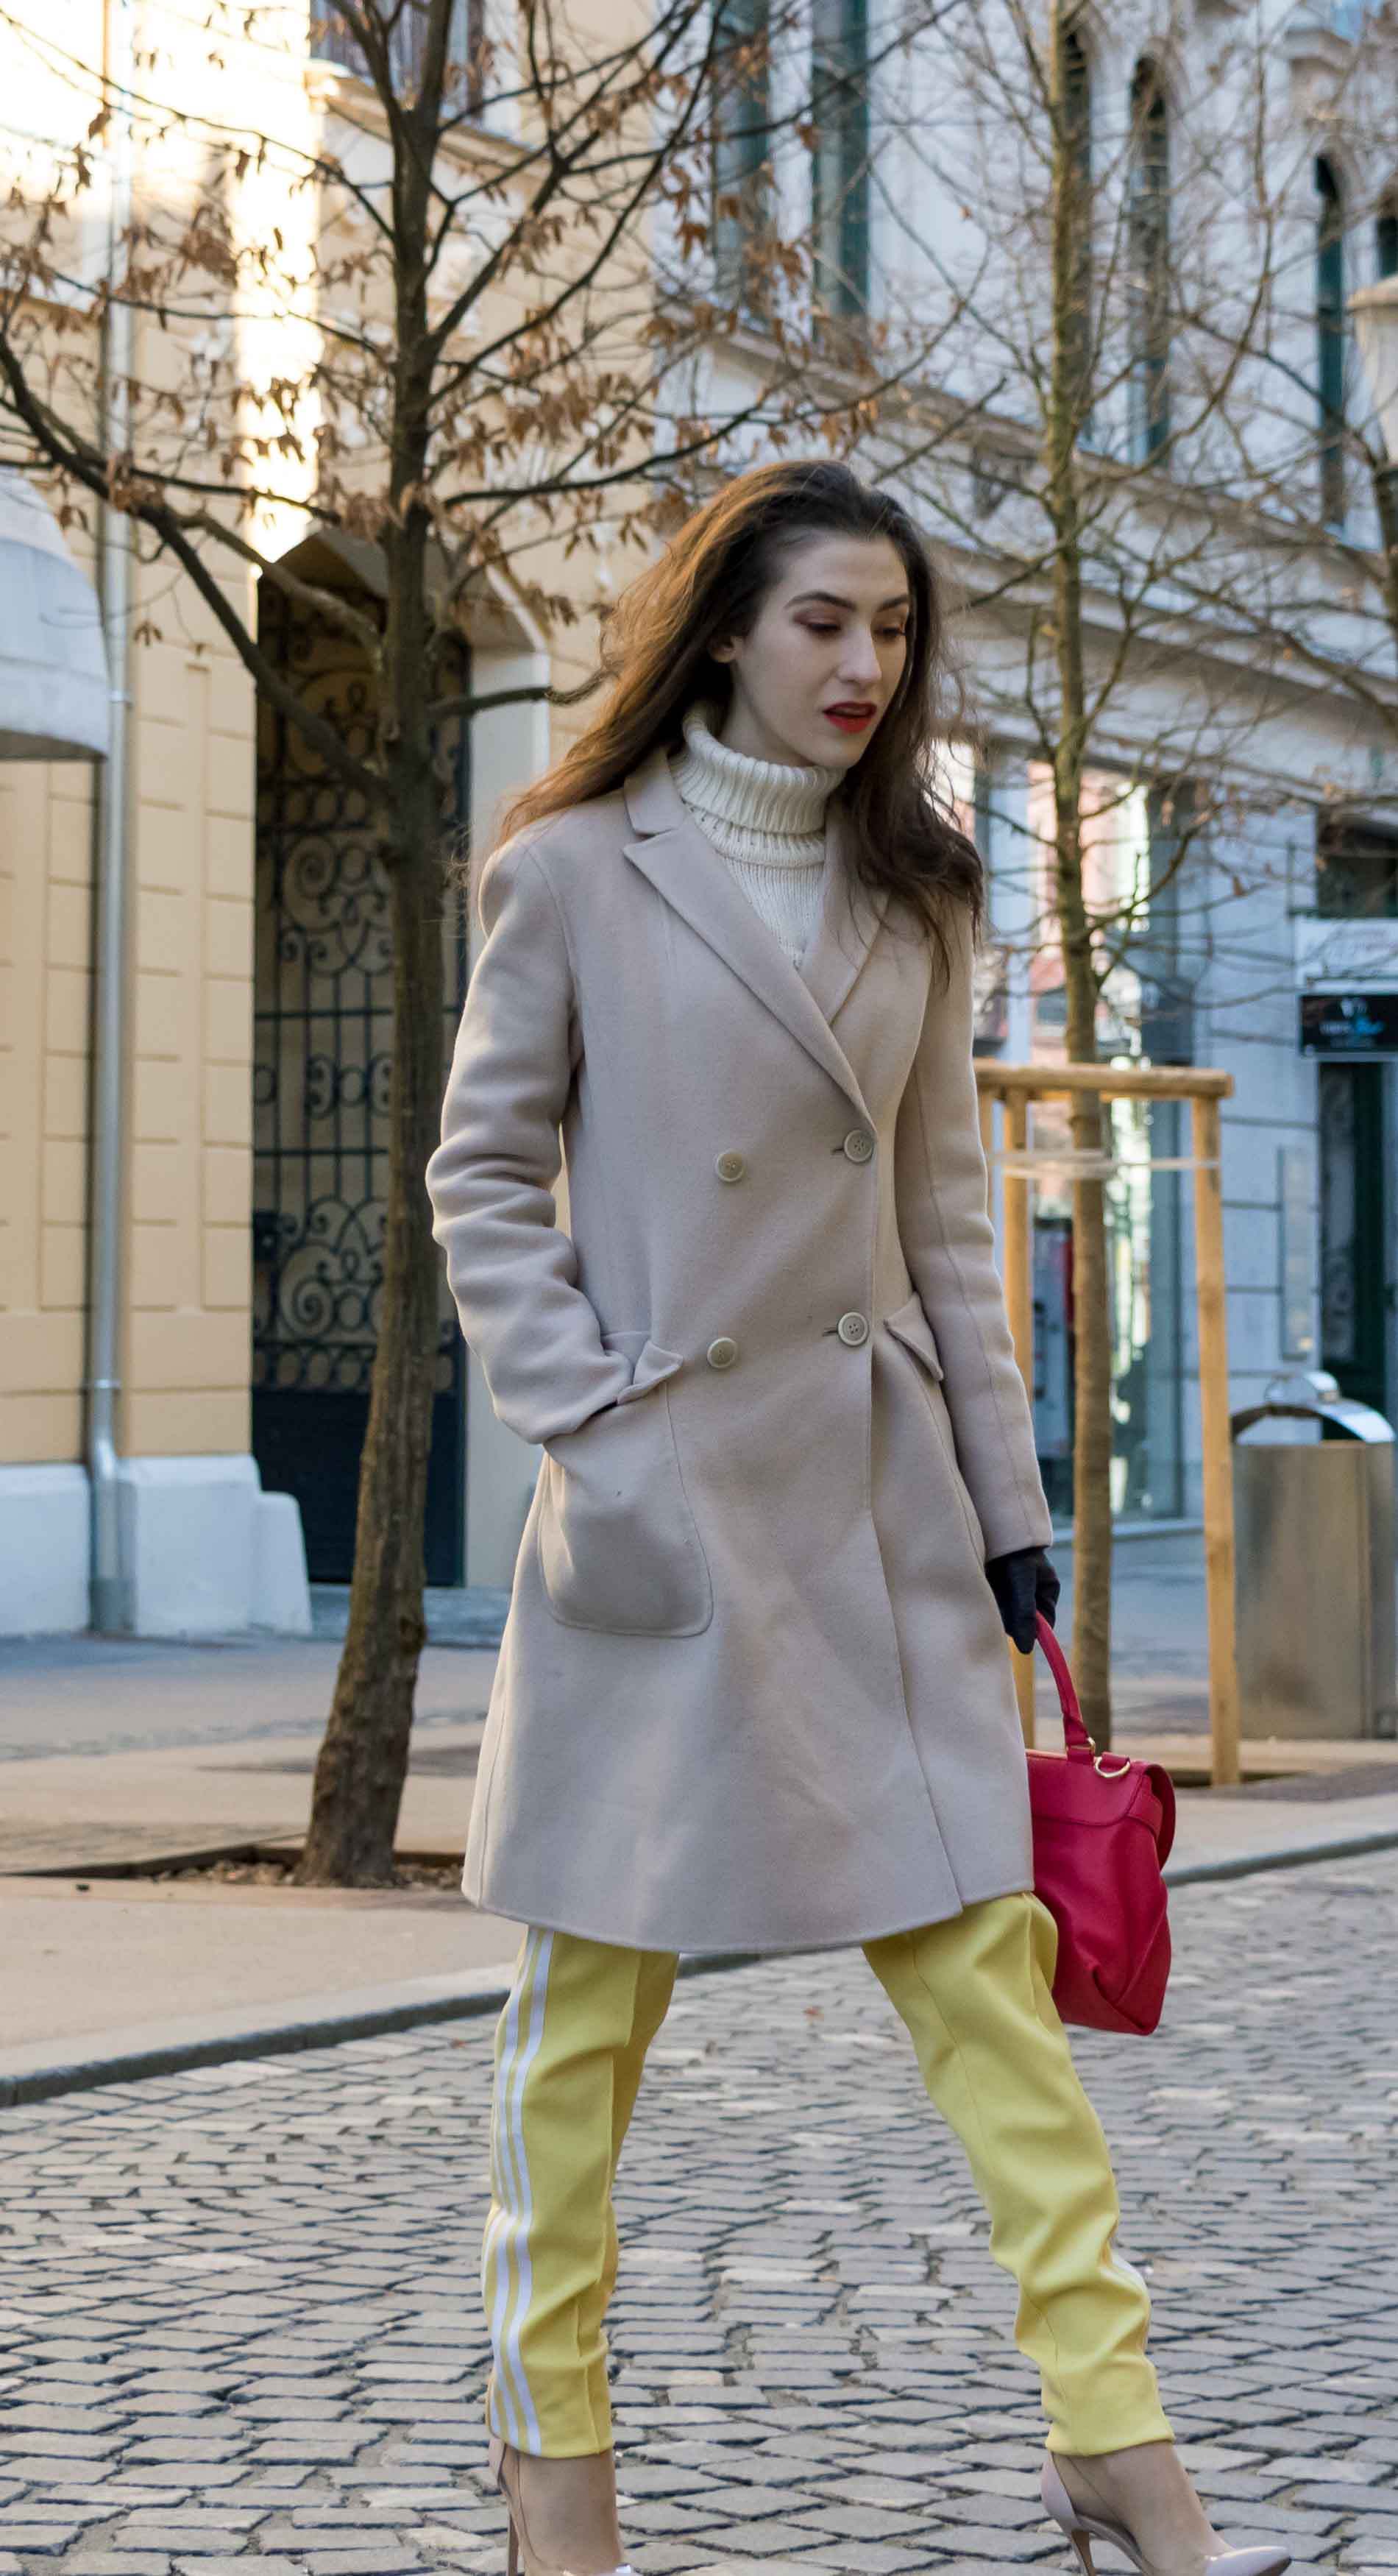 Fashion Blogger Veronika Lipar of Brunette from Wall Street dressed in yellow track pants with white stripes from Adidas, white turtleneck knit sweater, off-white pastel double breasted coat from Weekend Max Mara, blush powder transparent plexi pumps shoes from Gianvito Rossi, pink top handle bag from See by Chloe while crossing the street in Ljubljana on a cold spring day